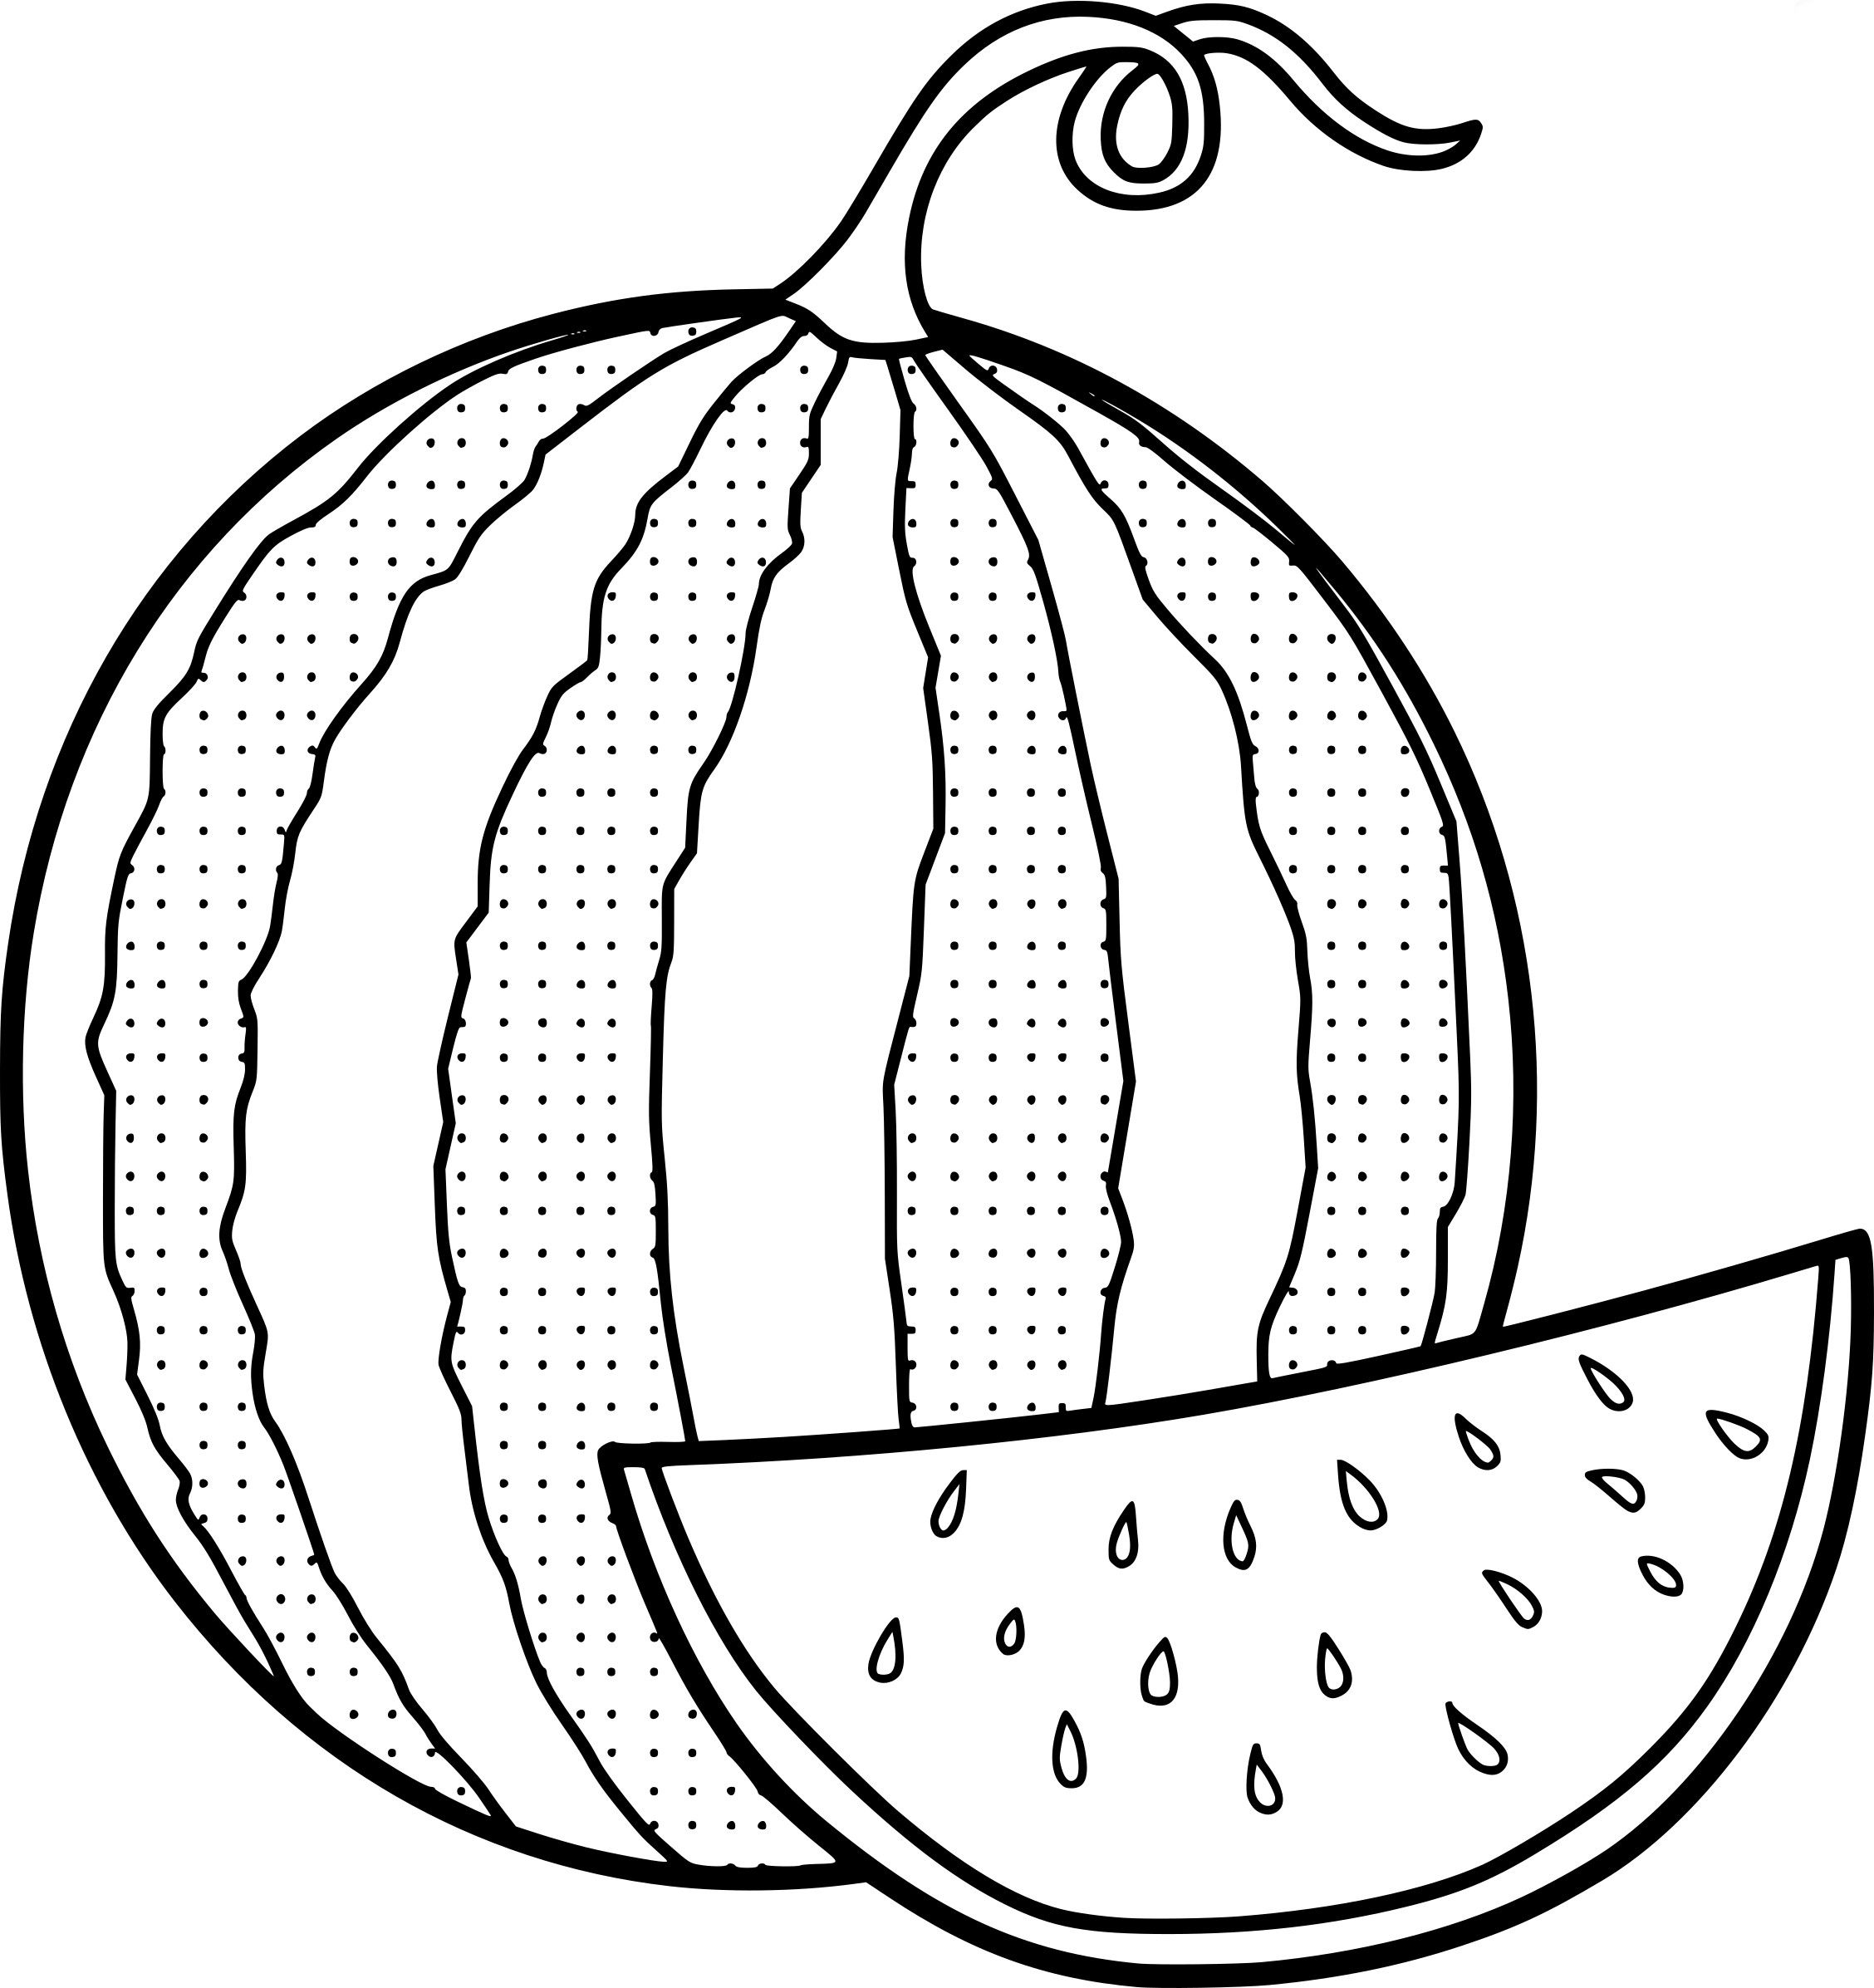 Coloring Pages Watermelon Fruit Coloring Pages Coloring Pages